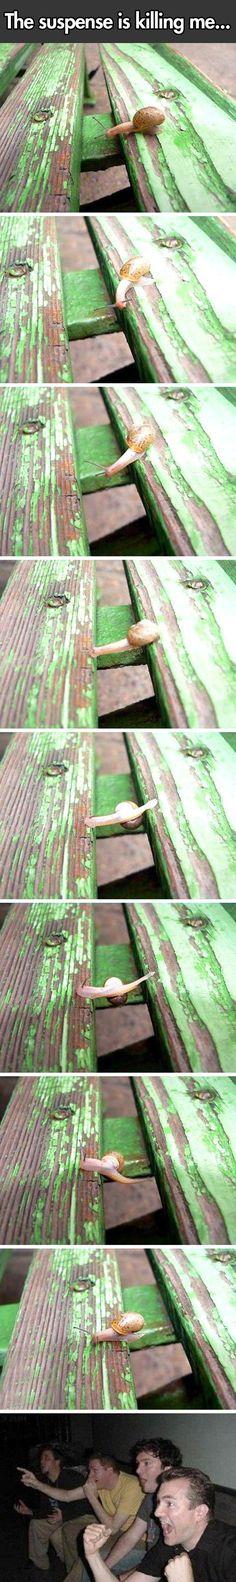 Parkour snail // funny pictures - funny photos - funny images - funny pics - funny quotes - #lol #humor #funnypictures